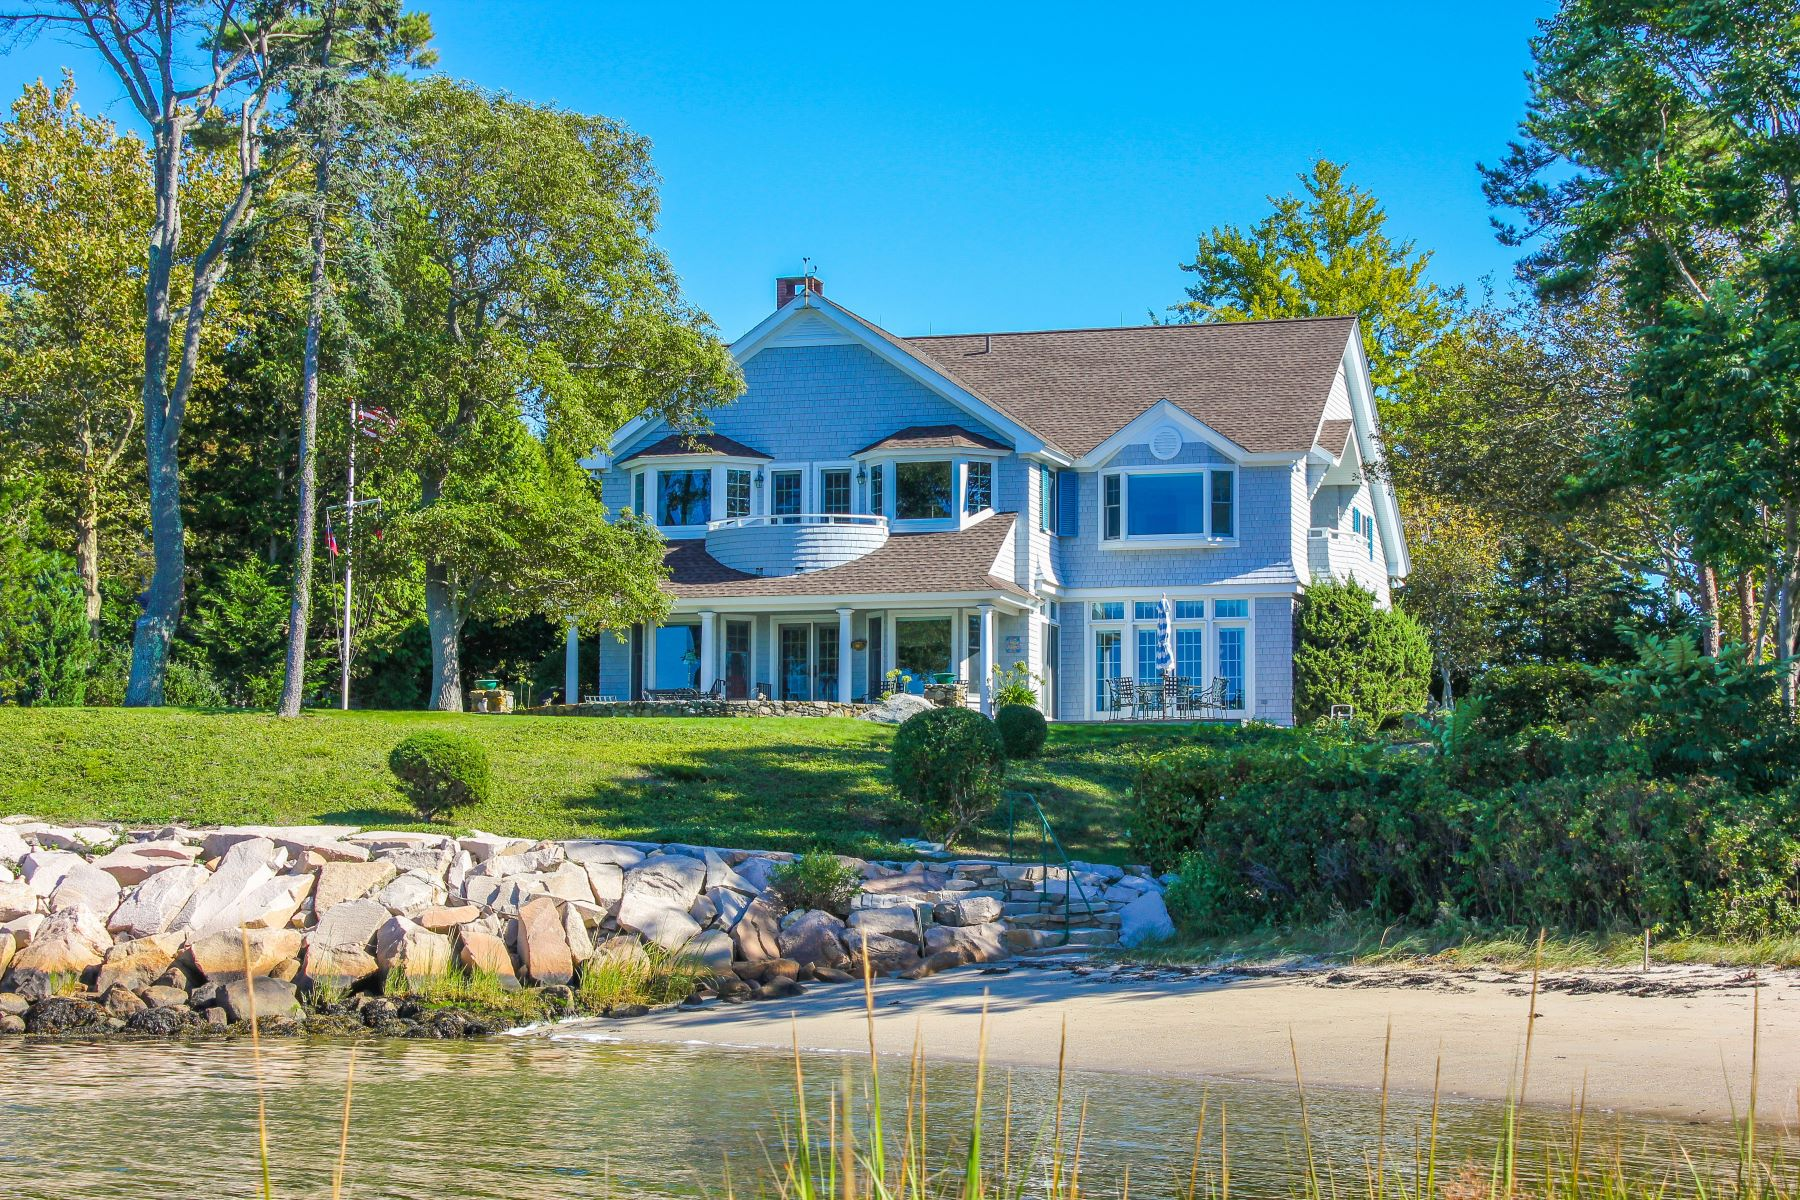 Single Family Homes for Sale at 9 Water's Edge Road, Westerly, RI 9 Water's Edge Road Westerly, Rhode Island 02891 United States